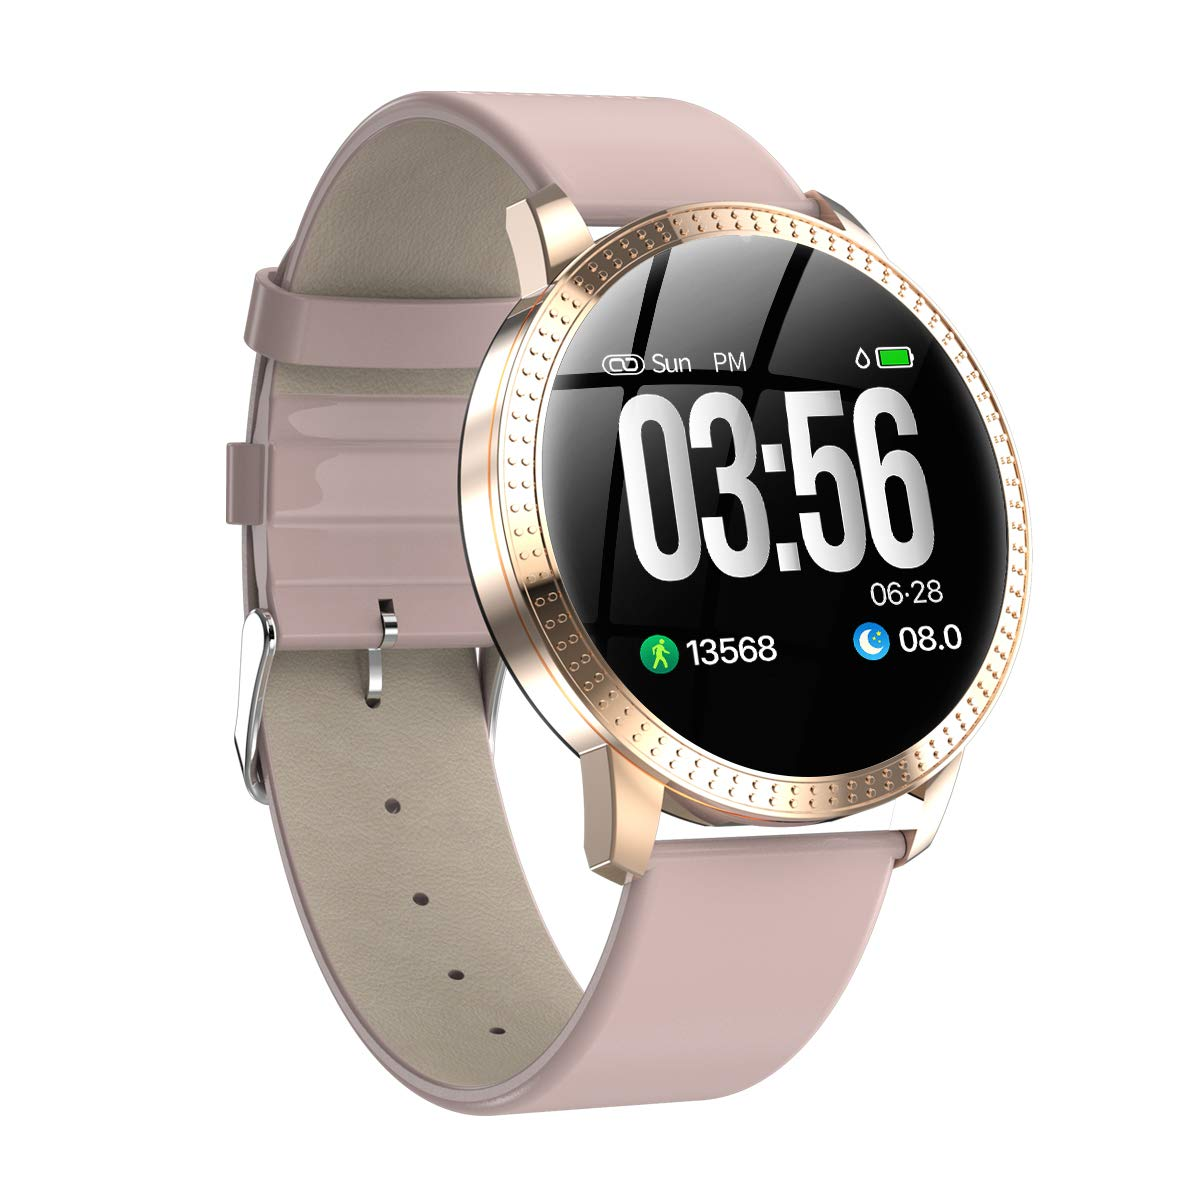 Fitness Tracker,Waterproof IP67 Smart Watches Color Screen Fitness Watch with Heart Rate Monitor Fitness Trackers Pedometer Watch Step Counter Sleep Monitor Calorie Counter for Kids Women Men,Pink